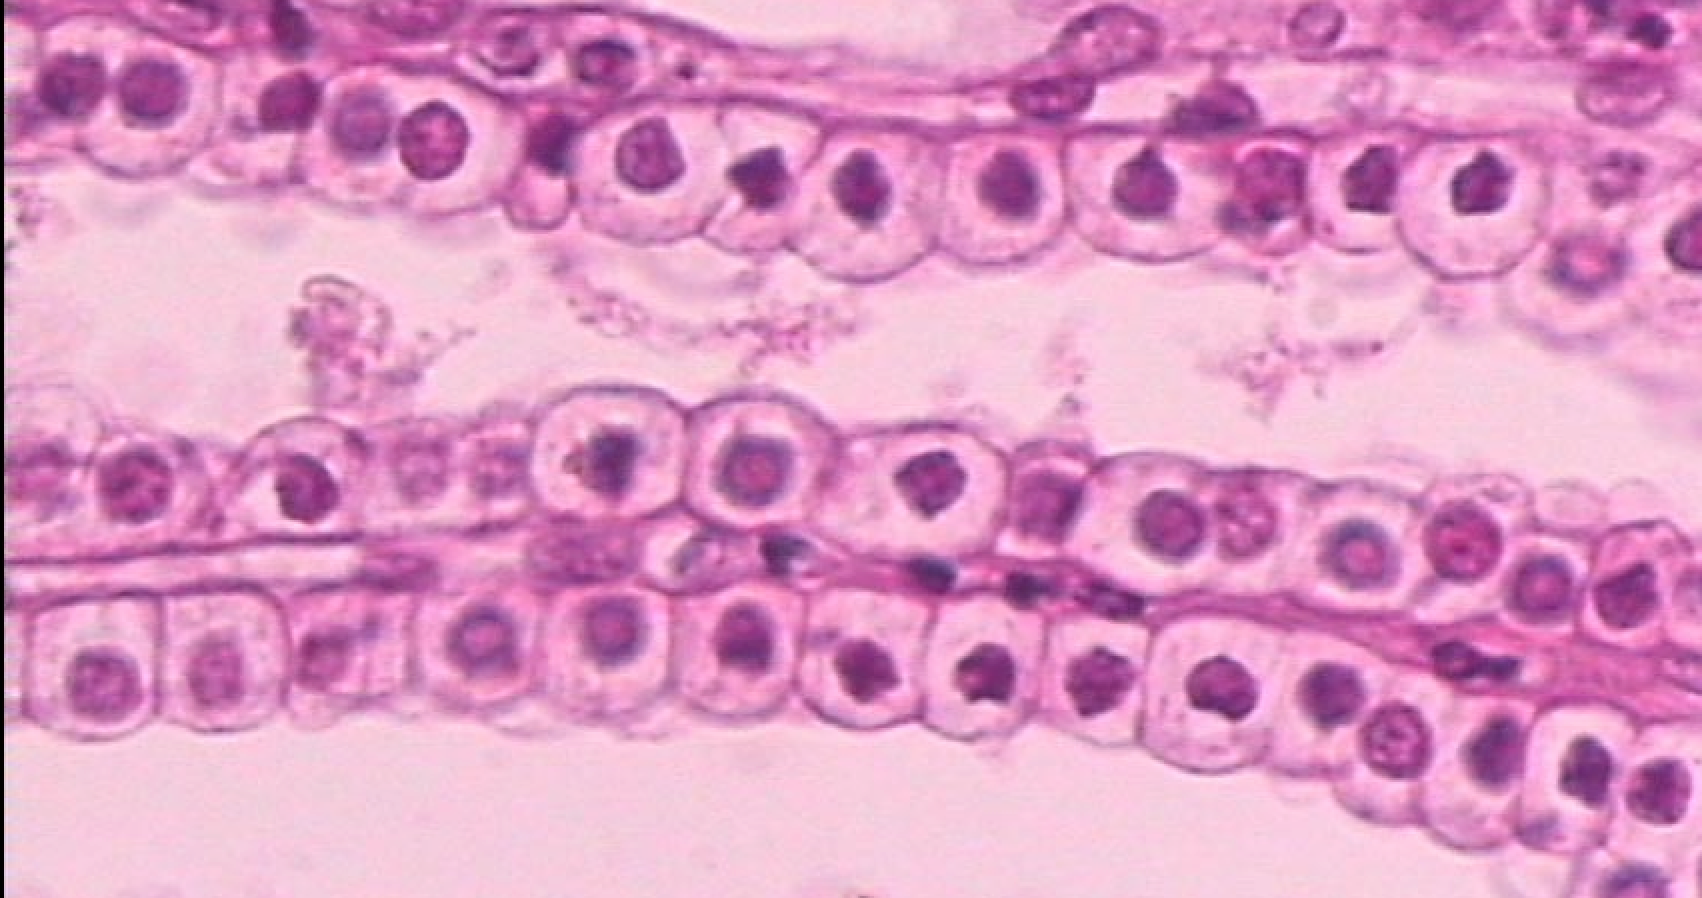 Stratified cuboidal epithelial tissue